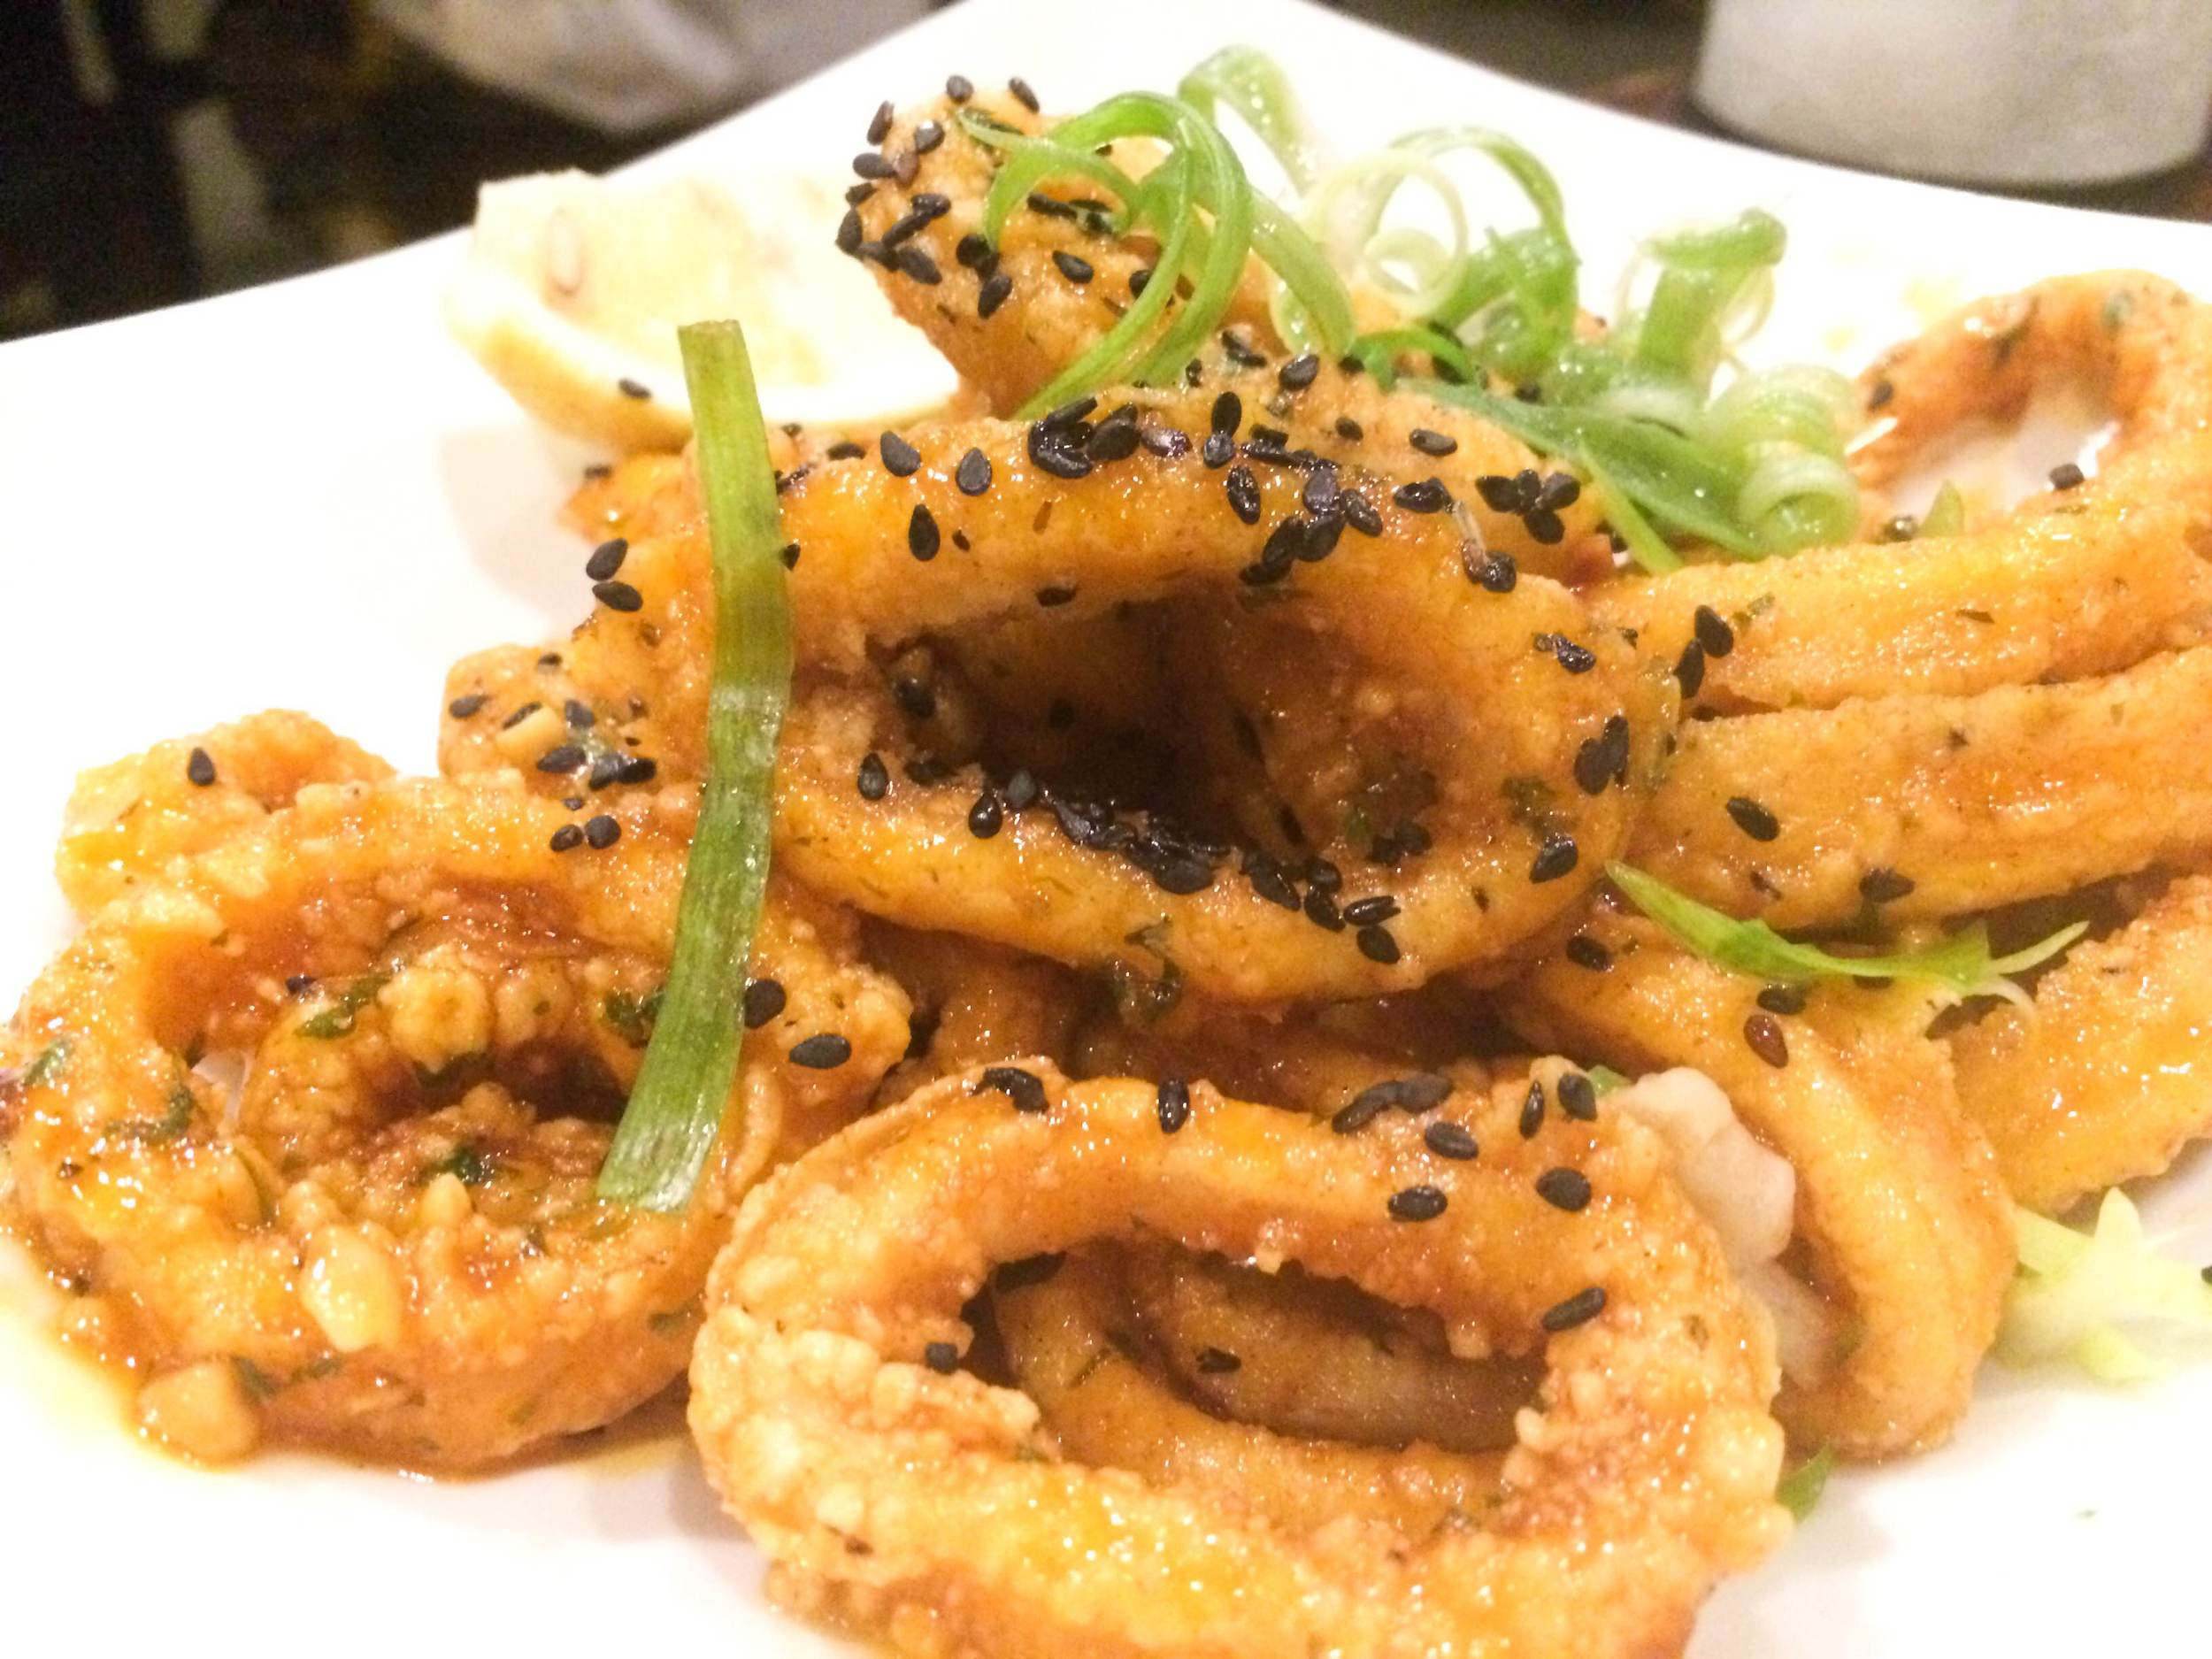 The Crispy Thai Style Calamari ($11) at Black & Blue Seafood Chophouse is enough to – momentarily, at least – make the hesitant squid eater an enthusiastic one. (Black & Blue Seafood Chophouse, 65 Wall Street, Huntington, 11743. 631-385-9255)  Long Islander News photo/ Arielle Dollinger